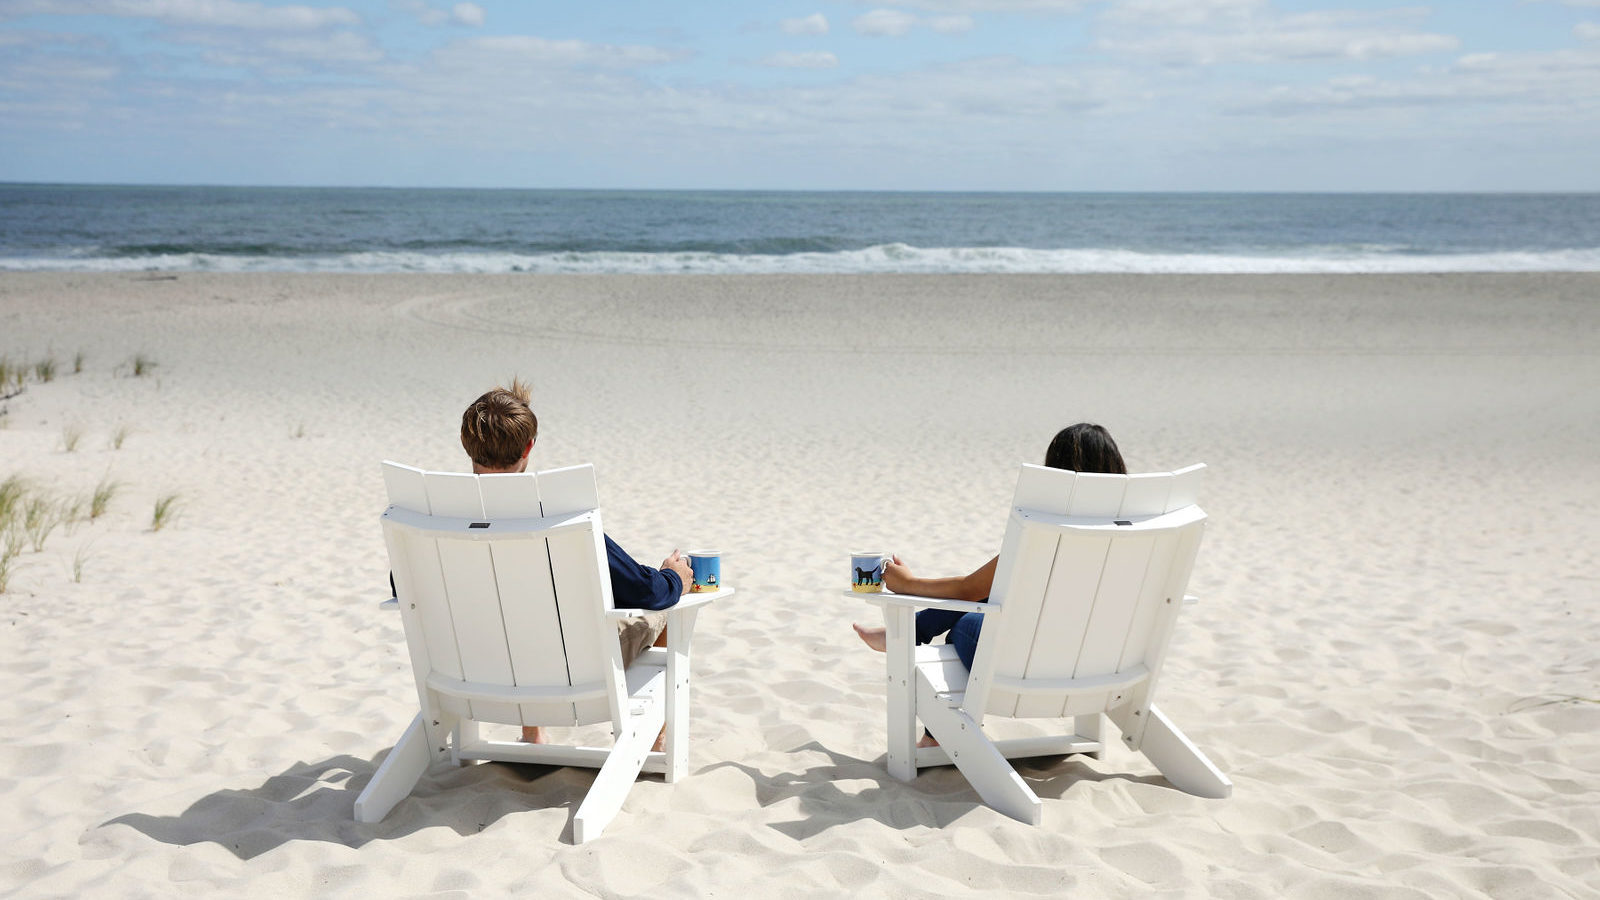 photo of two people sitting in beach chairs on a beach with beach dog mugs